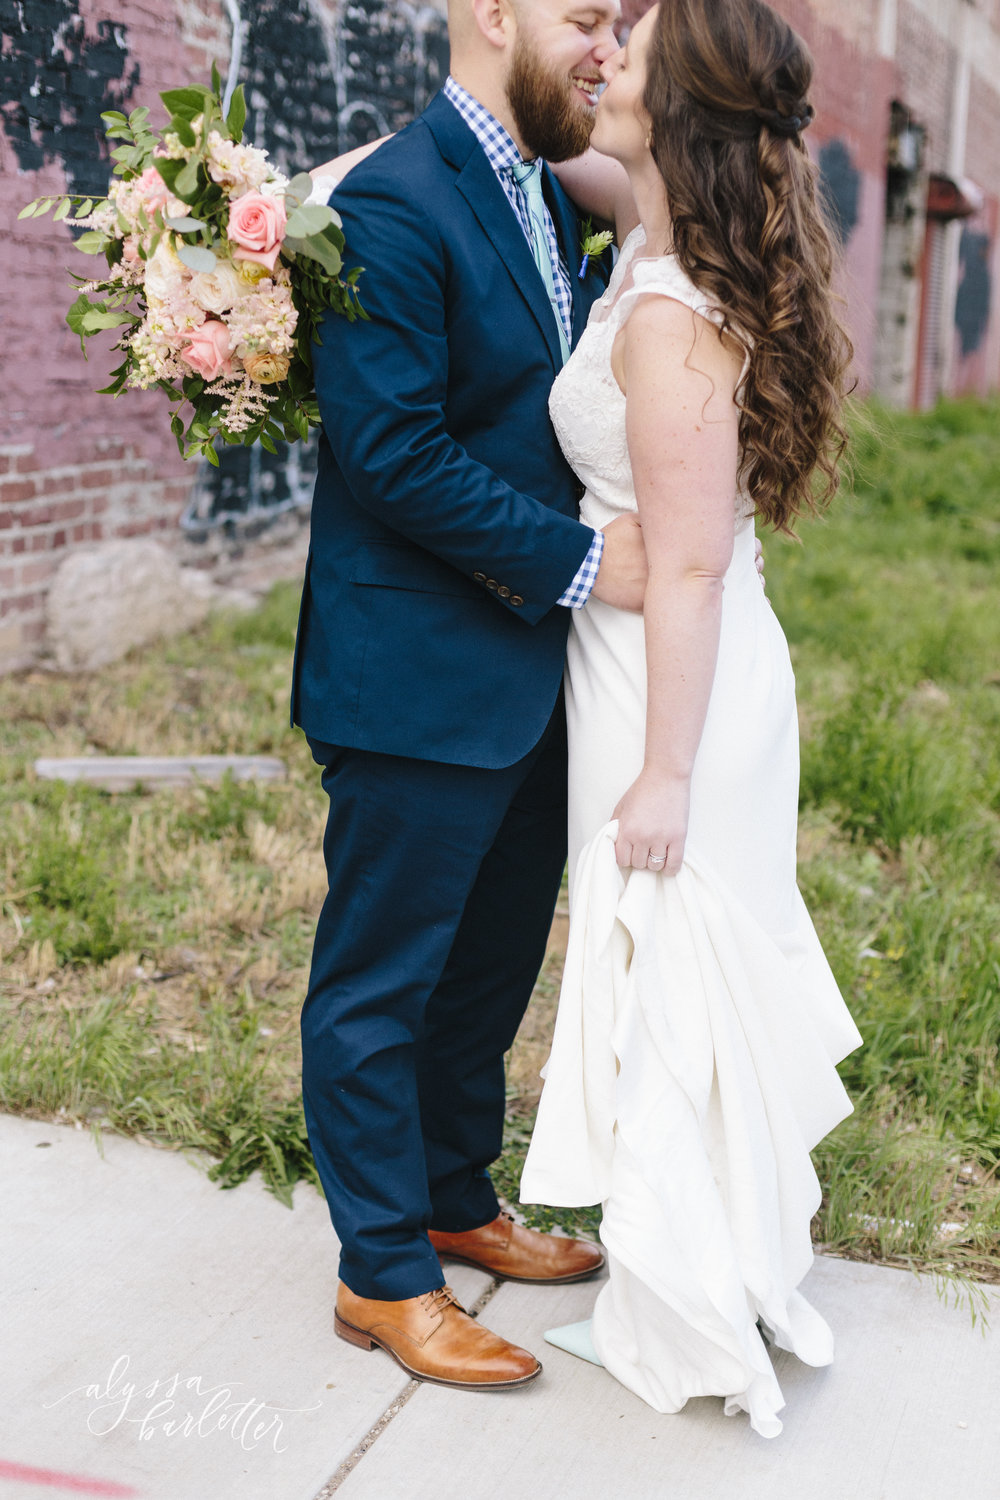 alyssa barletter photography kansas city wedding 2016 main courtney and brian-1-36.jpg